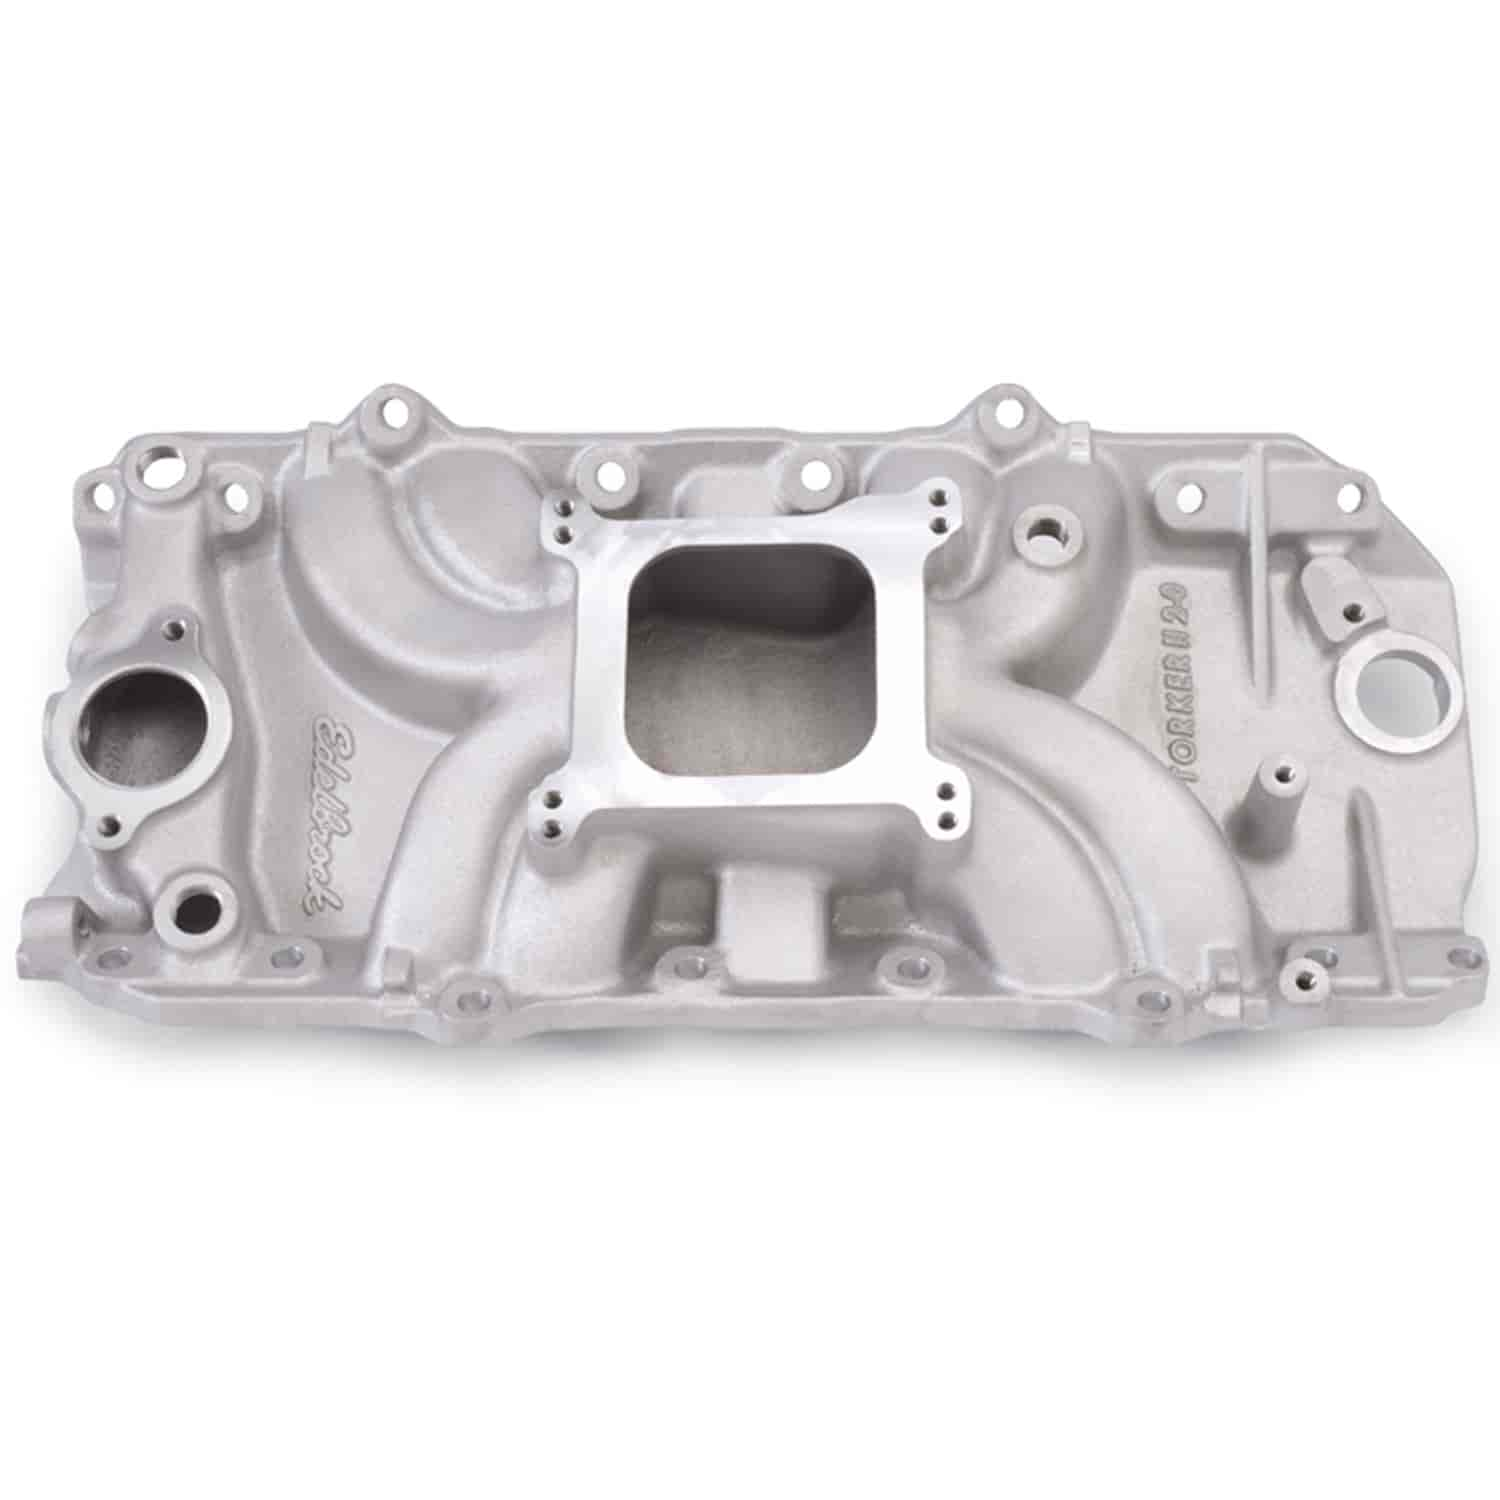 Edelbrock 5061 - Edelbrock Torker-II Manifolds and Kits for Chevy